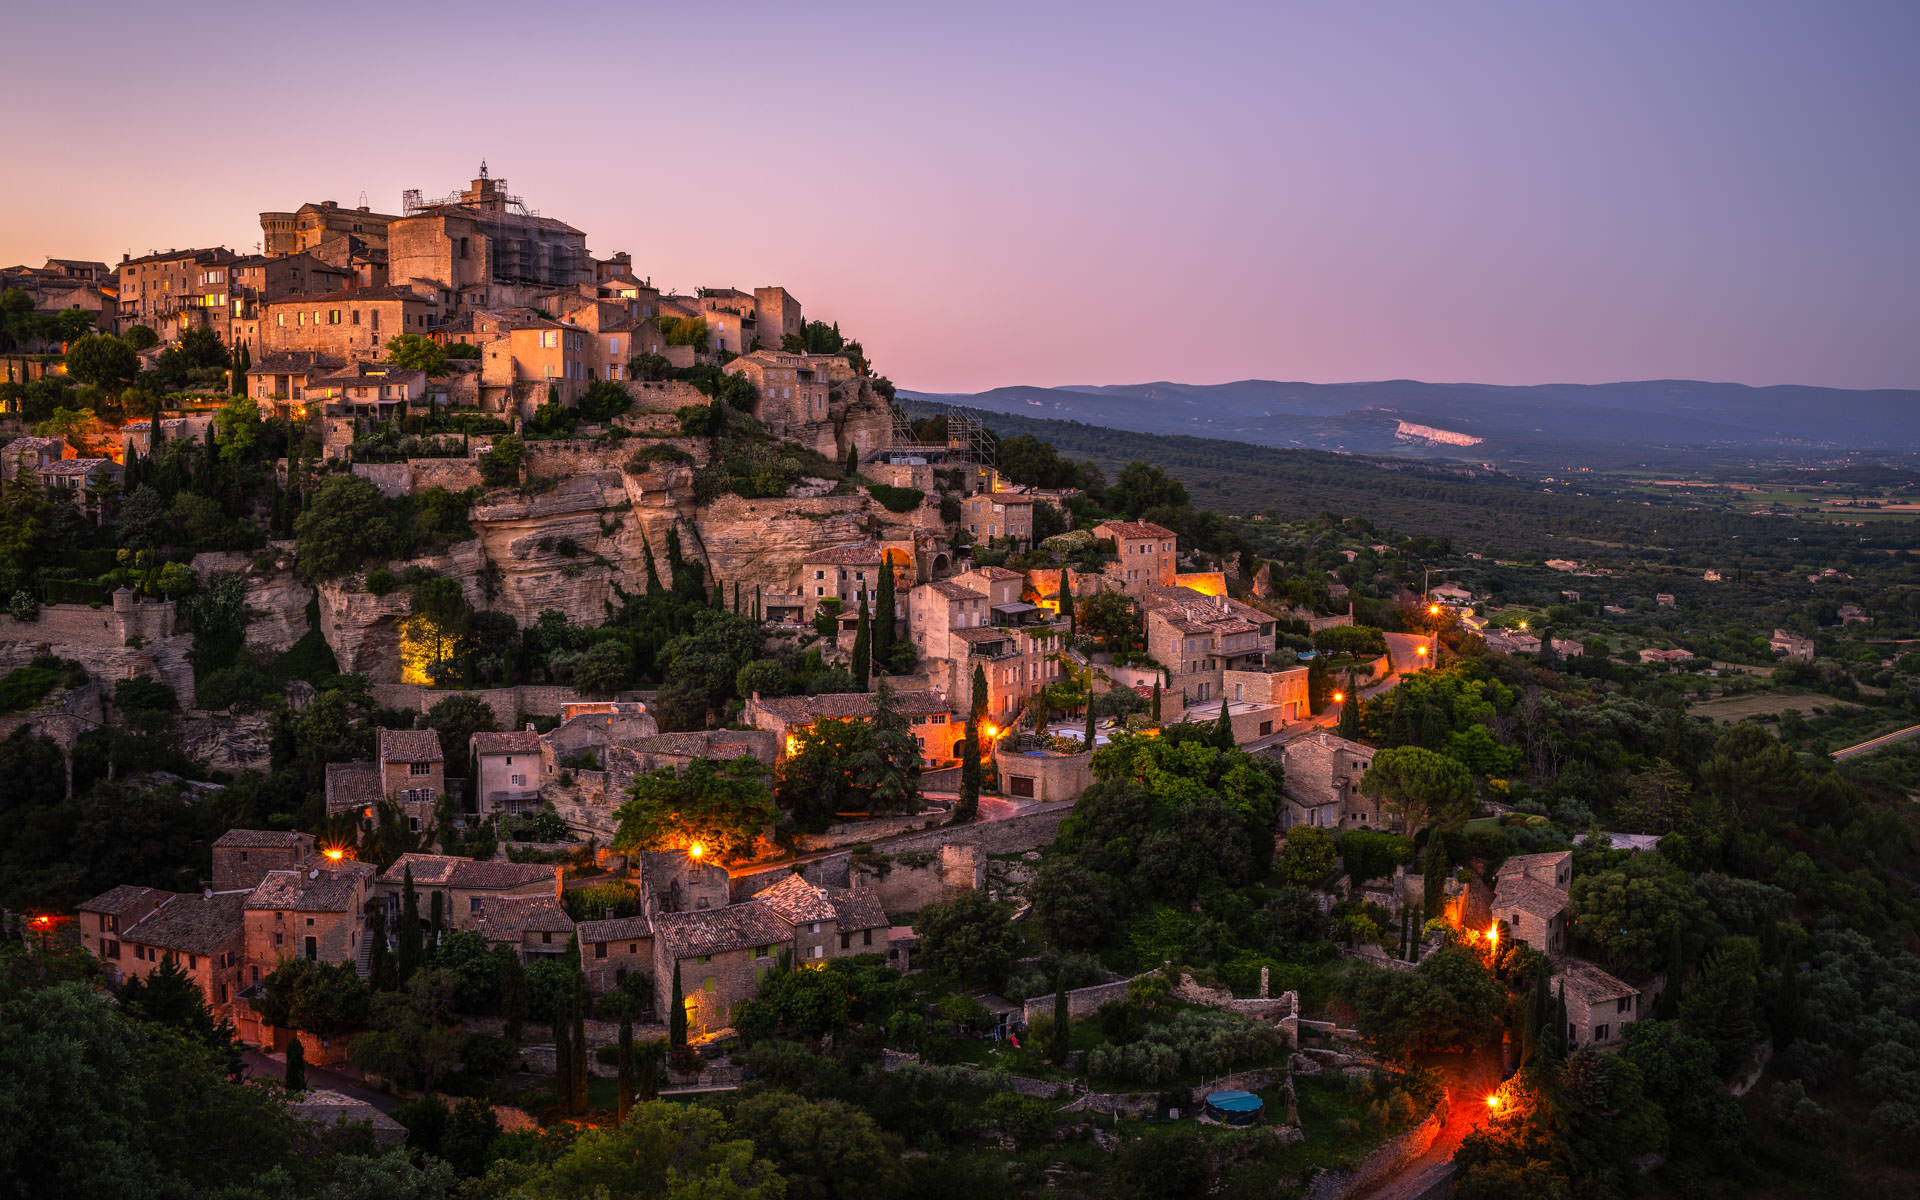 City of Gordes by Night - Provence, France by Lukas Petereit